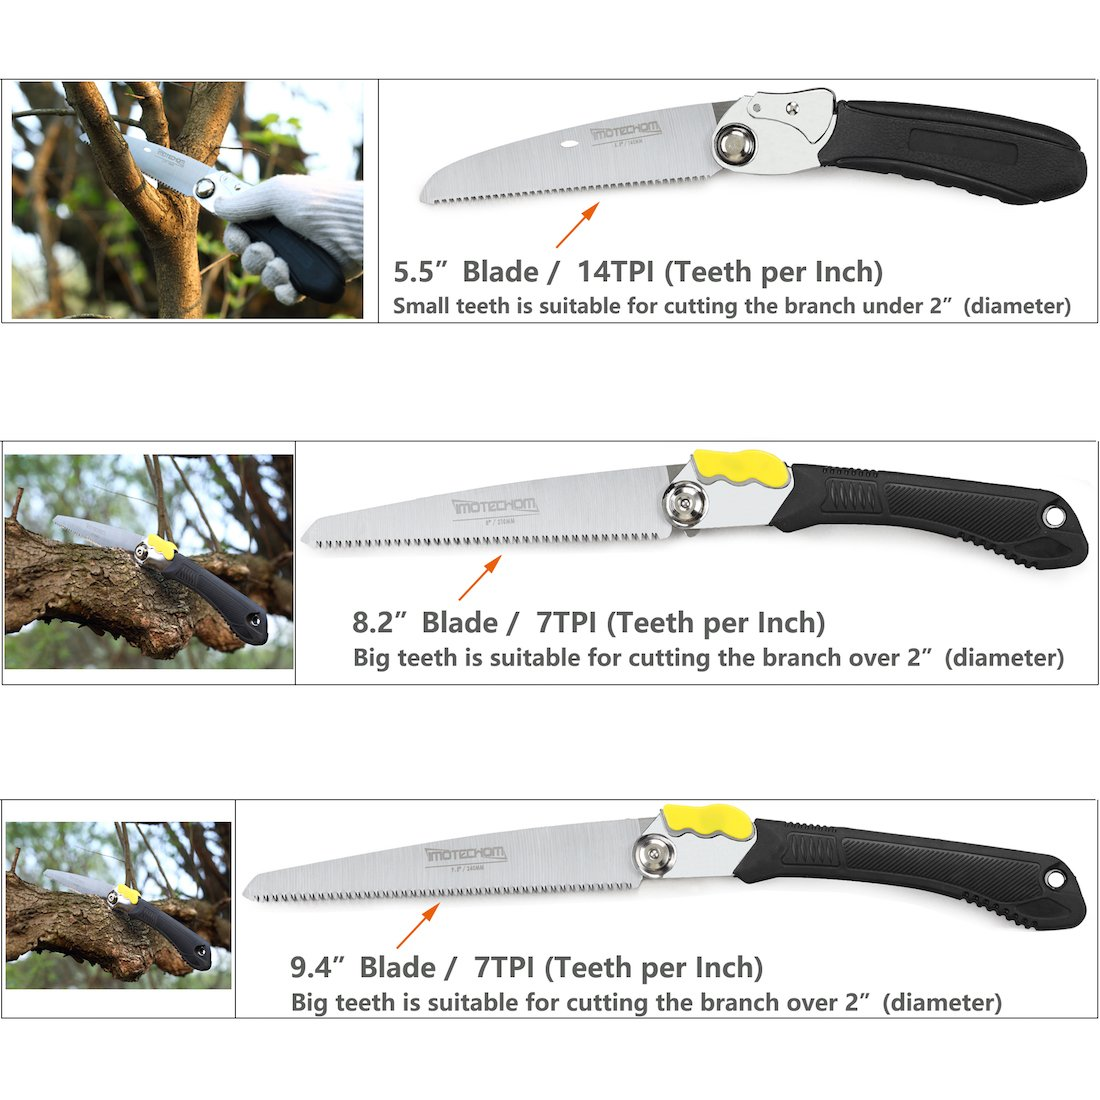 IMOTECHOM 8.2'' Folding Saw, 210MM Foldable Pruning Saw with 600D Carry Bag by IMOTECHOM (Image #3)